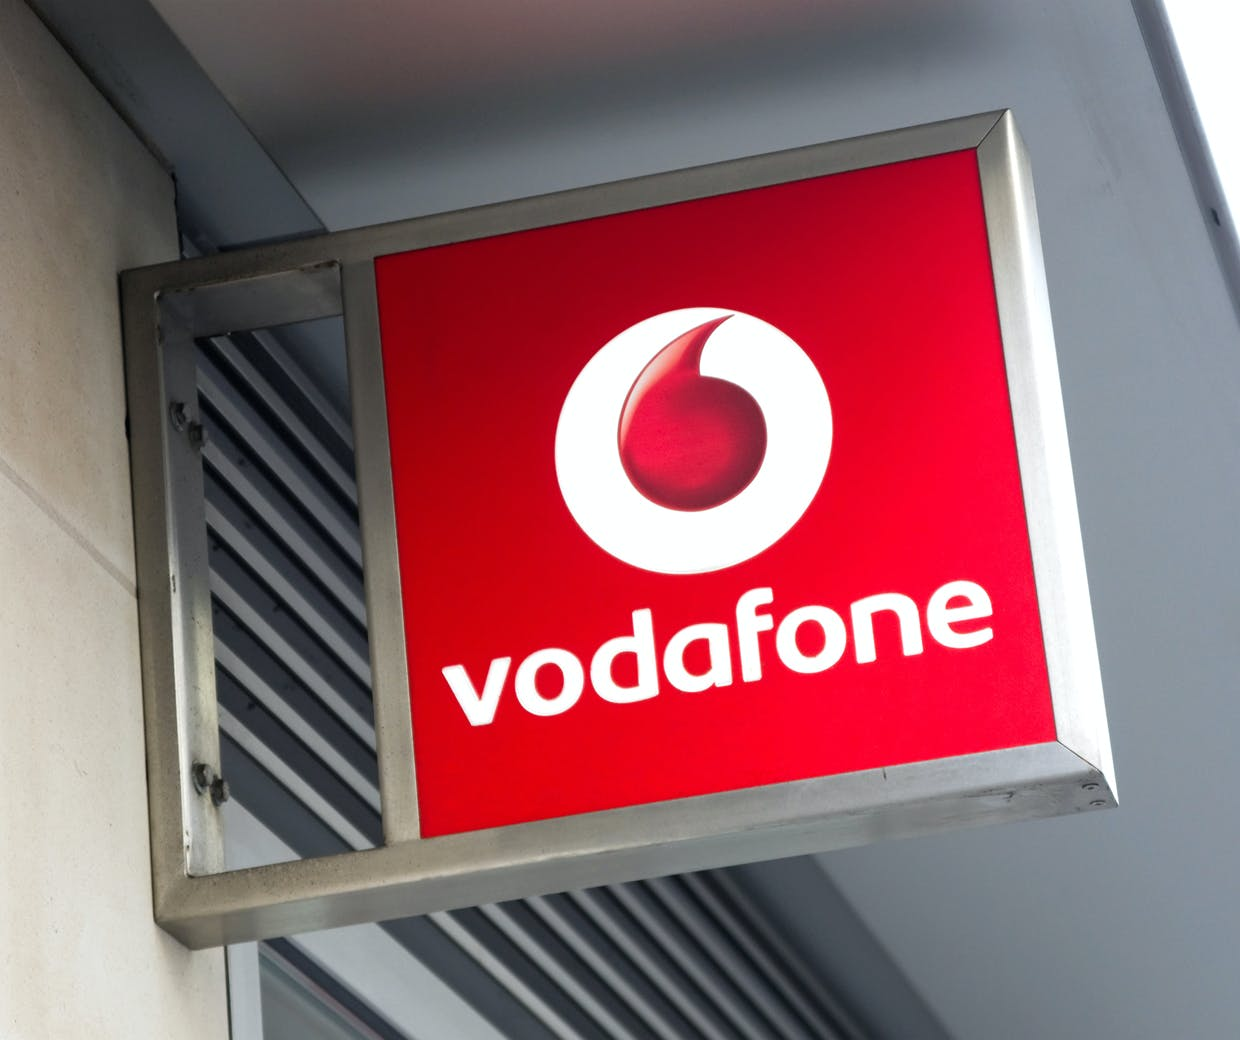 Vodafone expands its use of chatbots to transform the